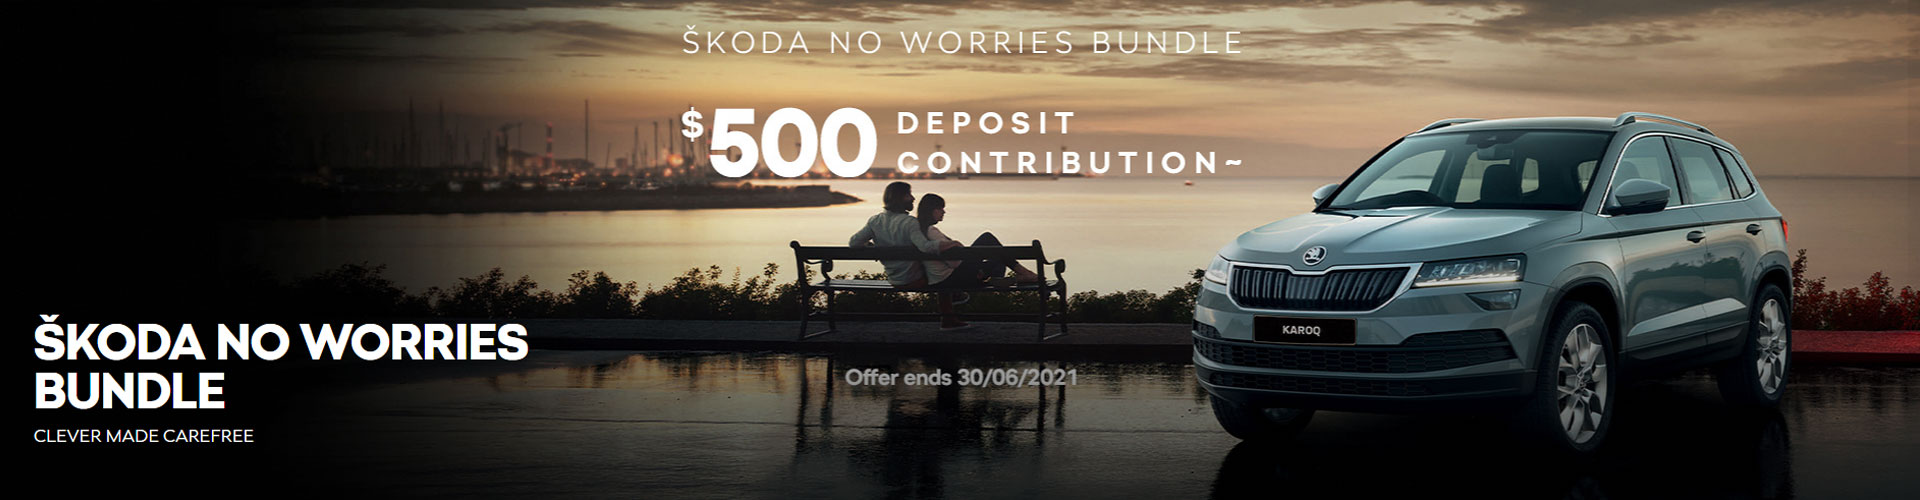 Skoda - No Worries Bundle